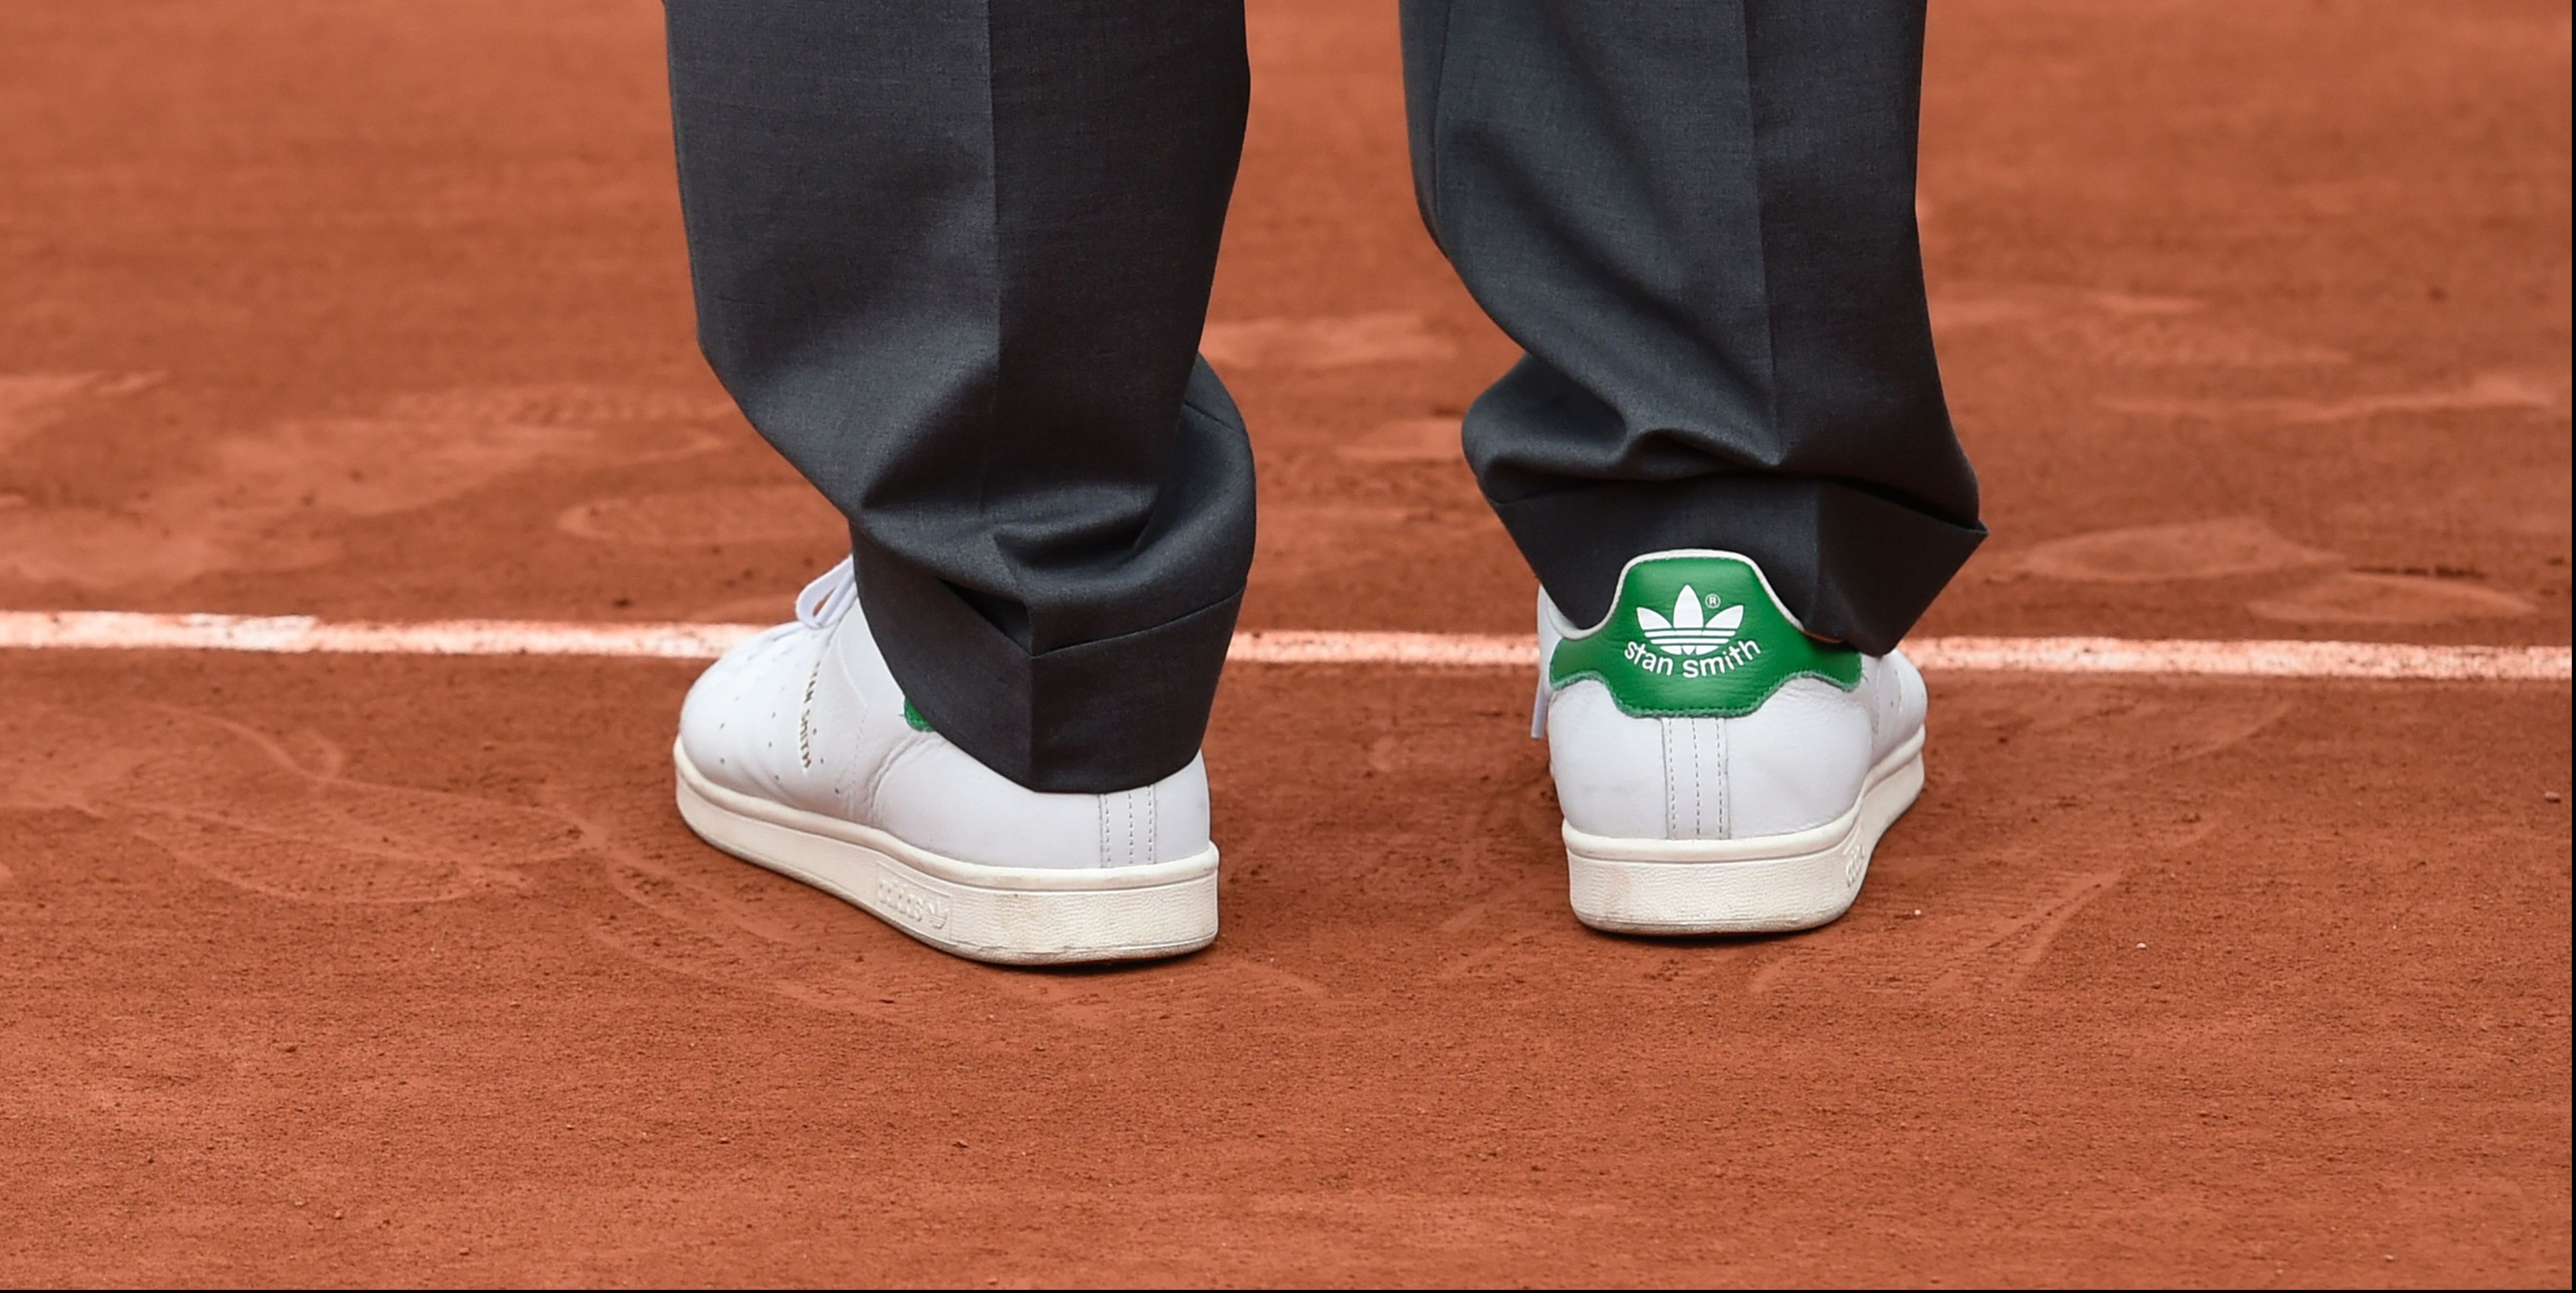 Court sneakers are great—whether you're wearing them to play or not.